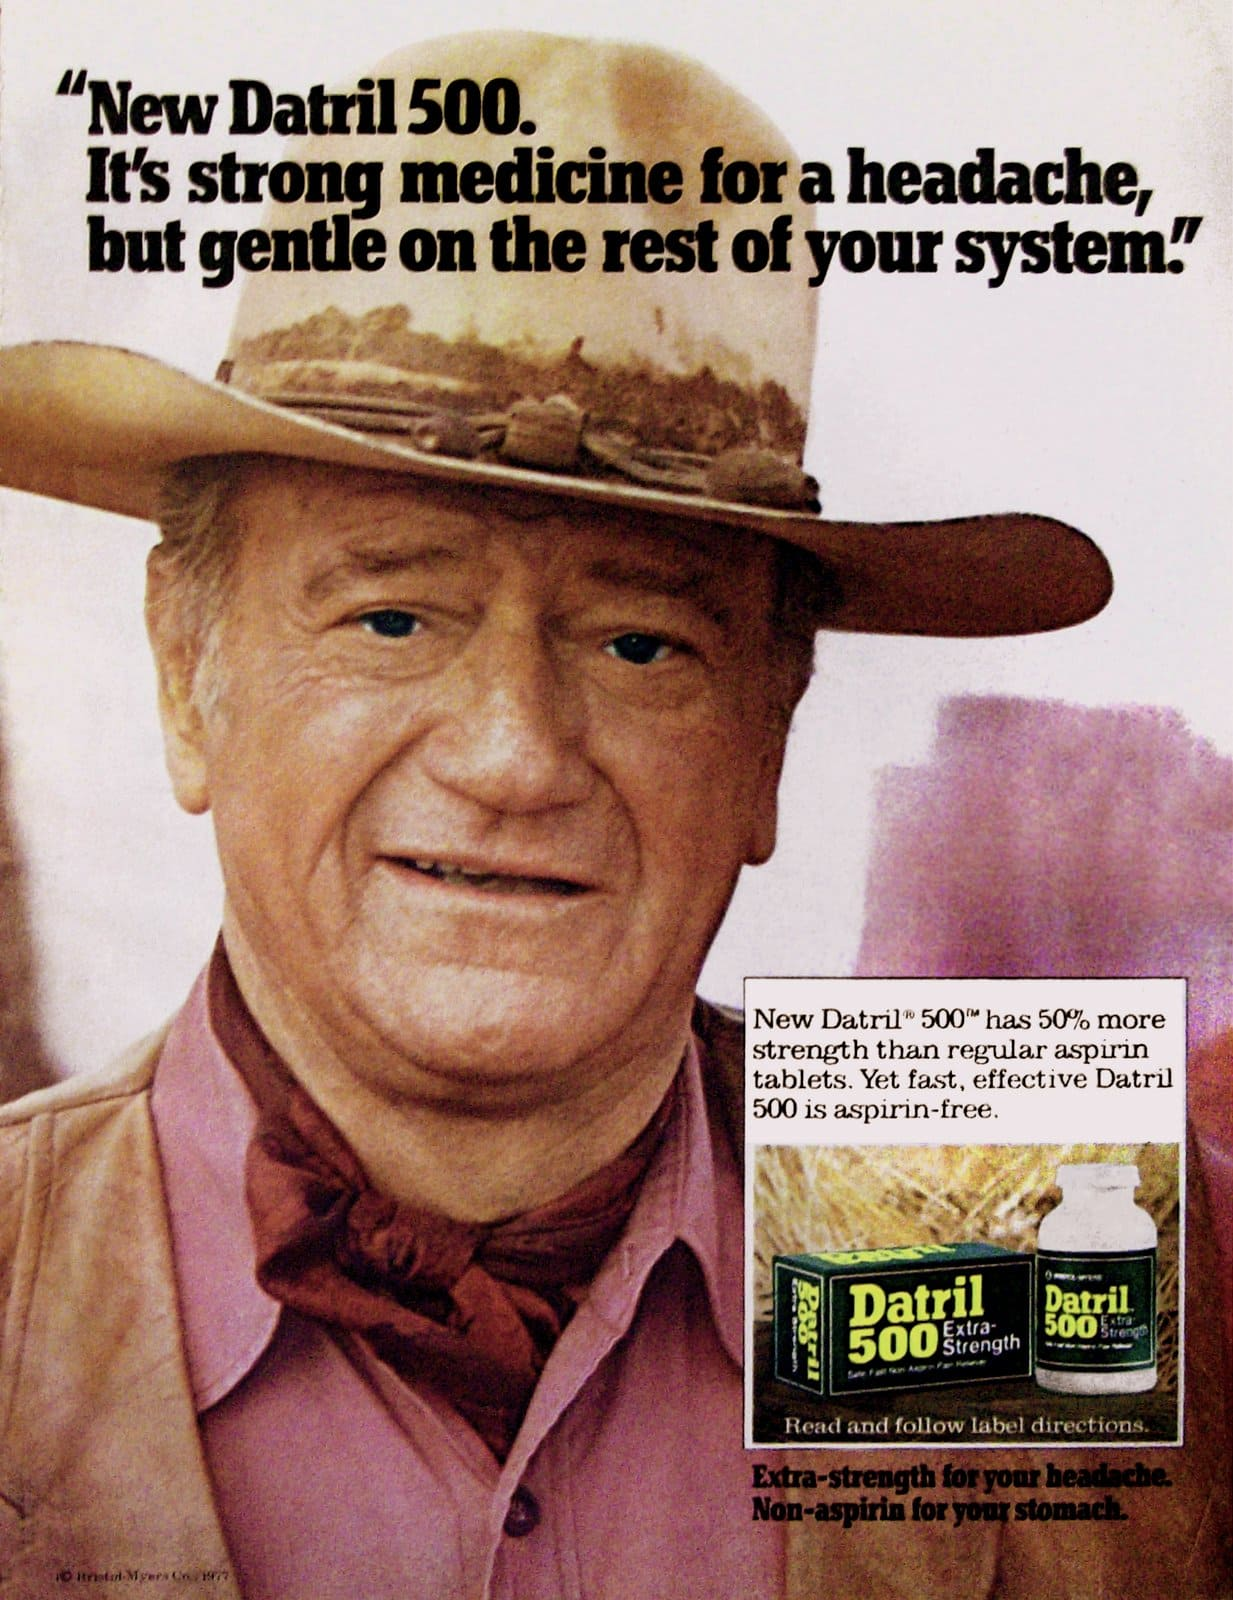 Vintage John Wayne for Datril 500 pain reliever (1970s)